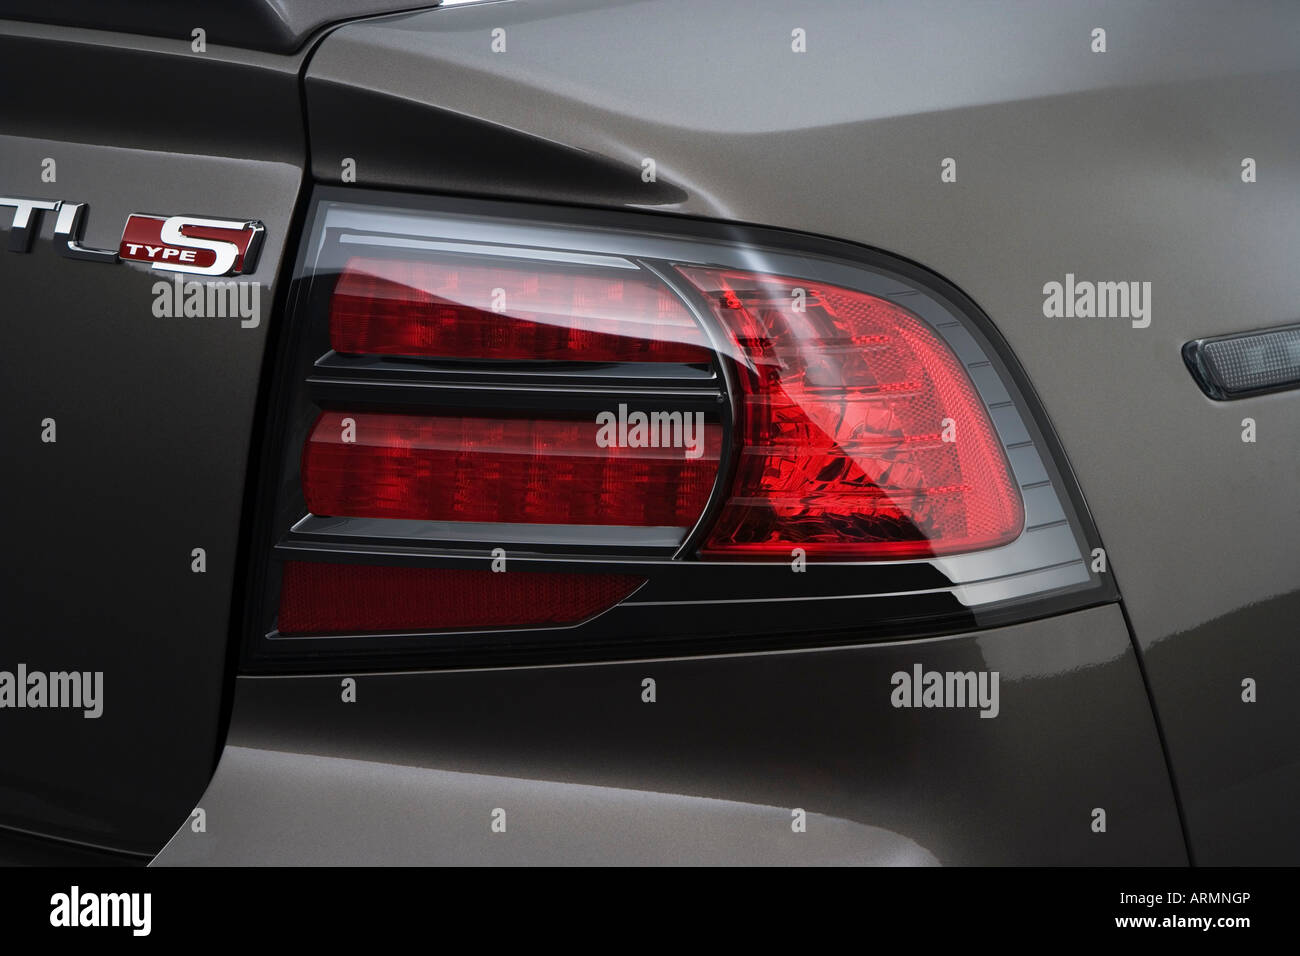 Acura Tl Type In Stock Photos Acura Tl Type In Stock - Acura tl tail lights